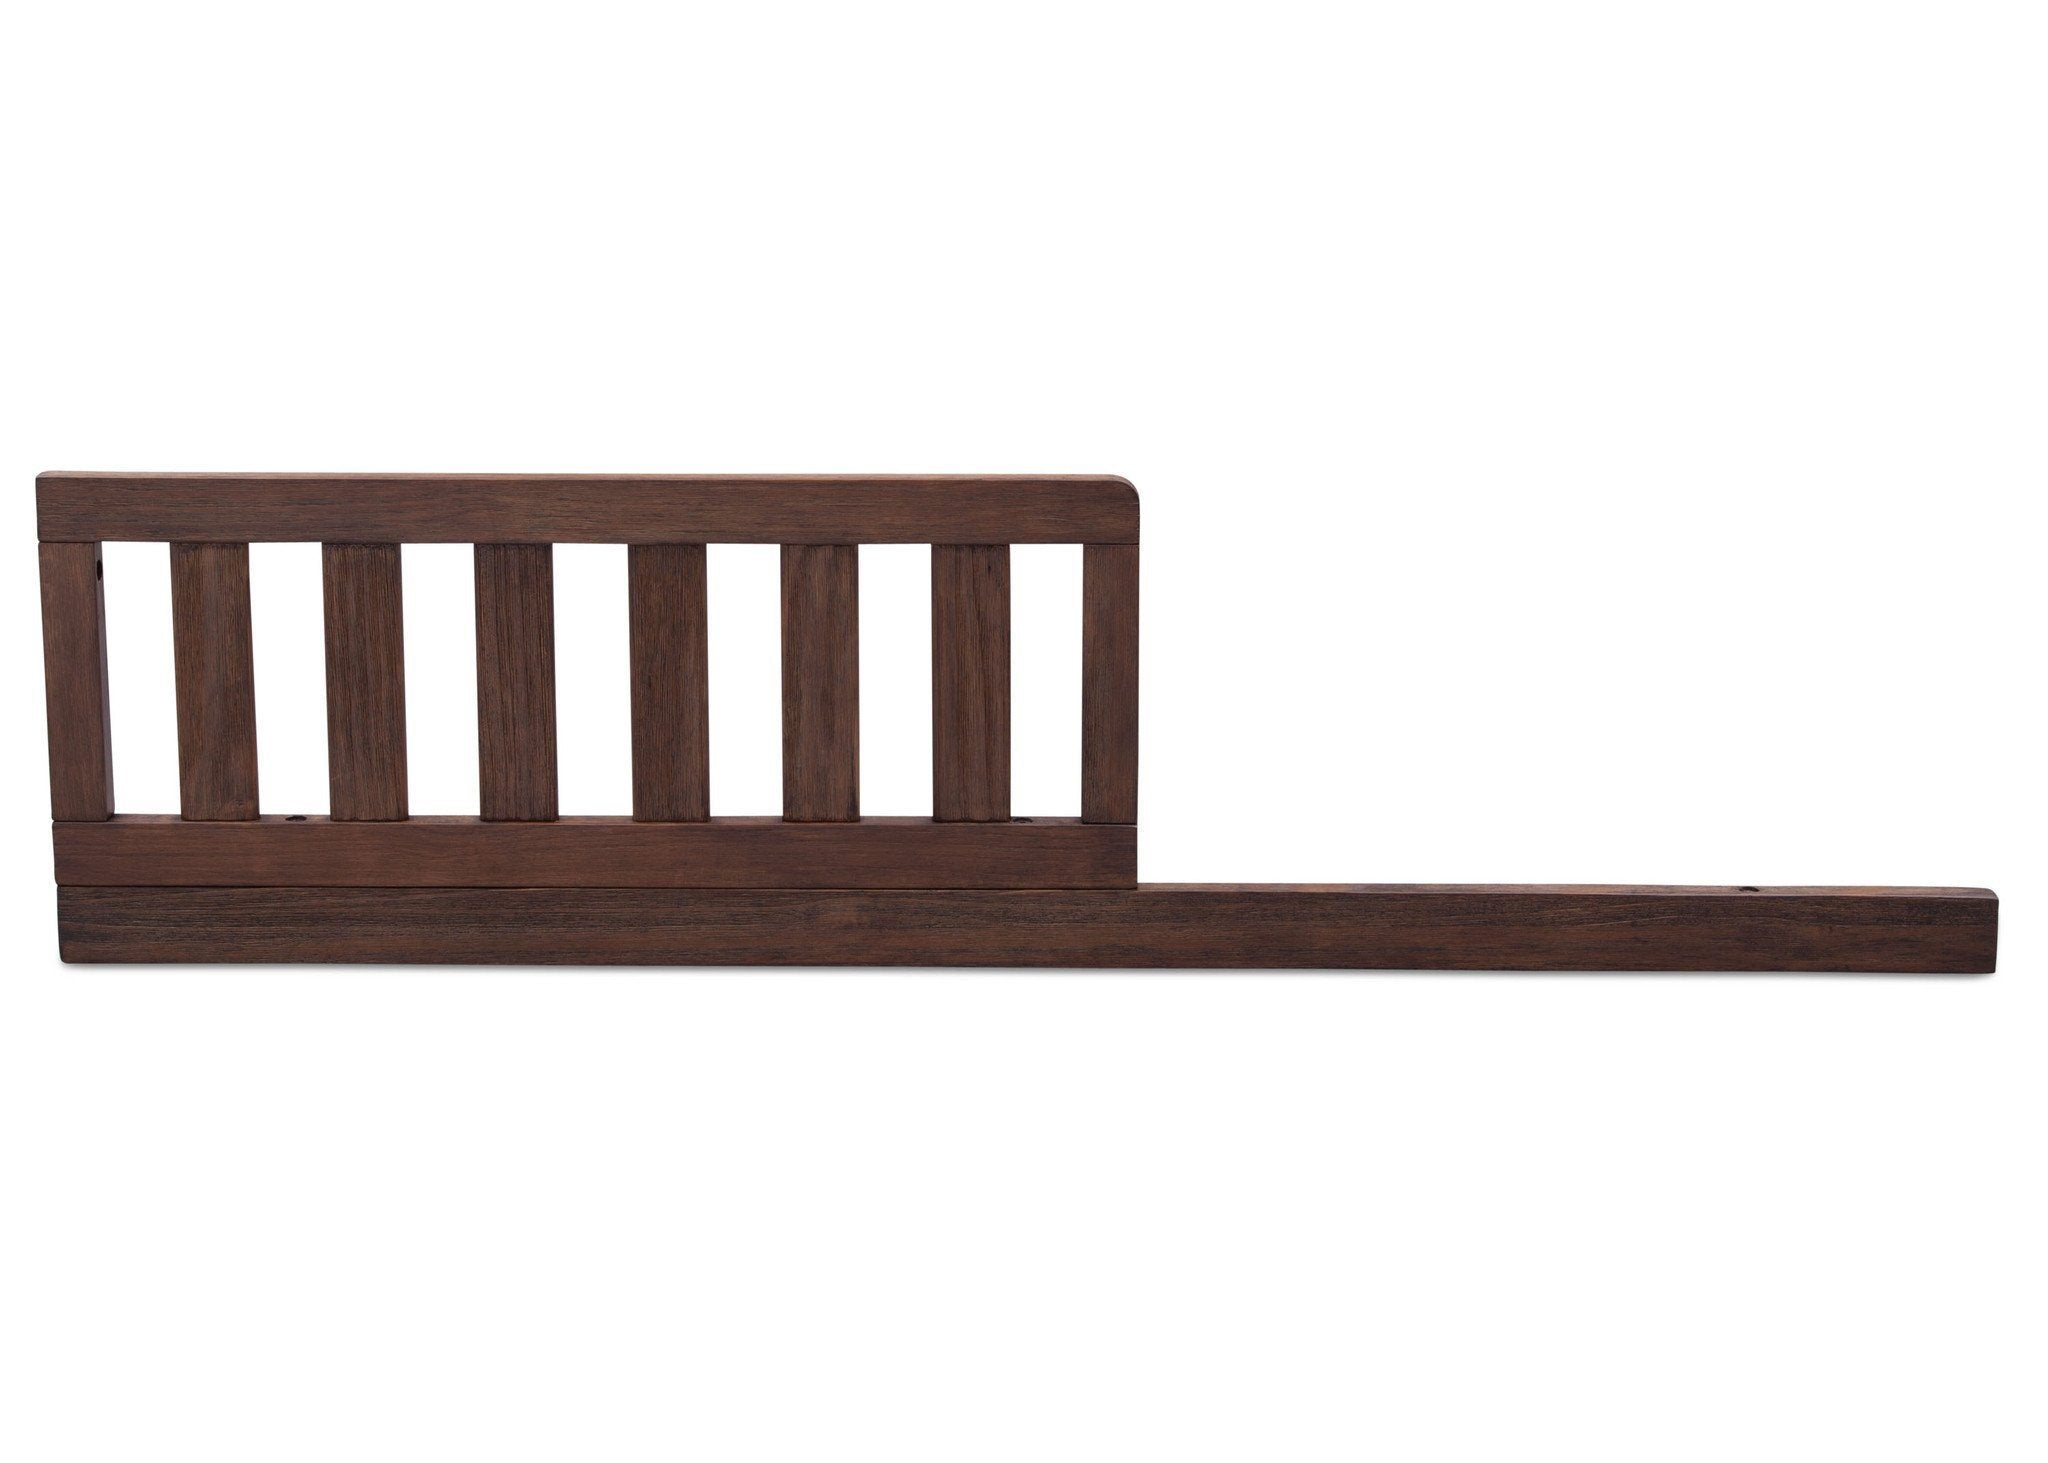 Serta Rustic Oak (229) Toddler Guardrail/Daybed Rail Kit, Front View b2b